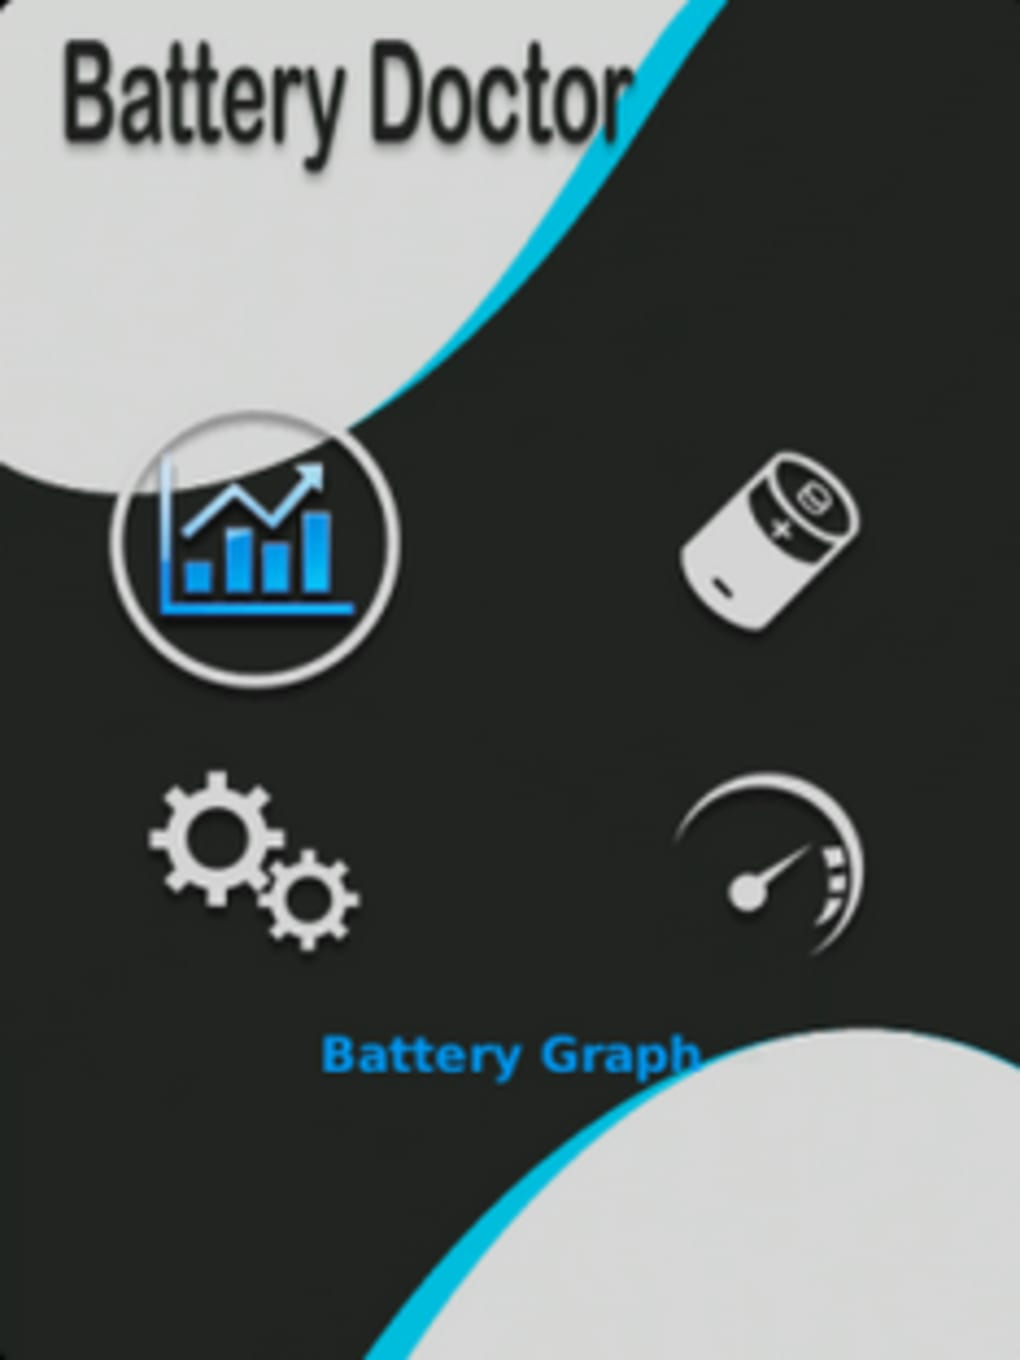 Battery saver free-battery doctor! For blackberry download.